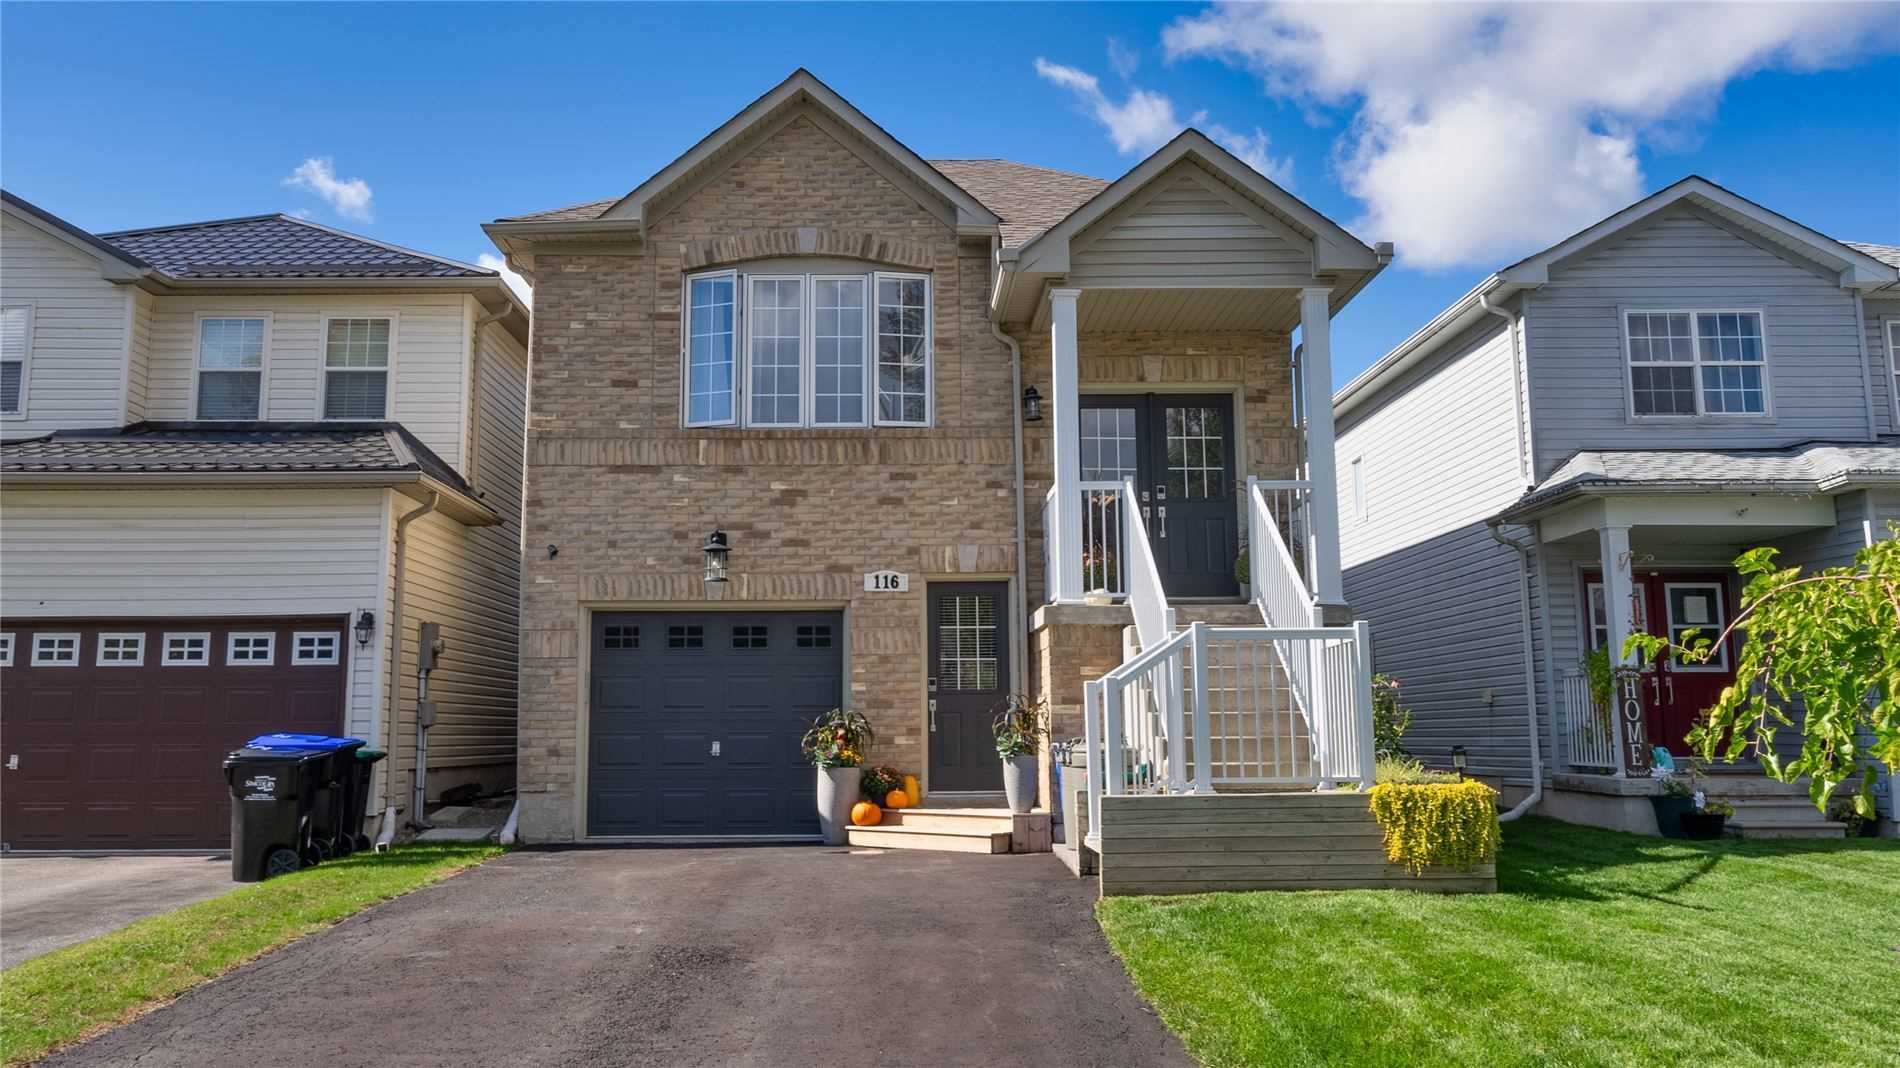 Detached house For Sale In Essa - 116 Maplewood Dr, Essa, Ontario, Canada L0M 1B4 , 2 Bedrooms Bedrooms, ,3 BathroomsBathrooms,Detached,For Sale,Maplewood